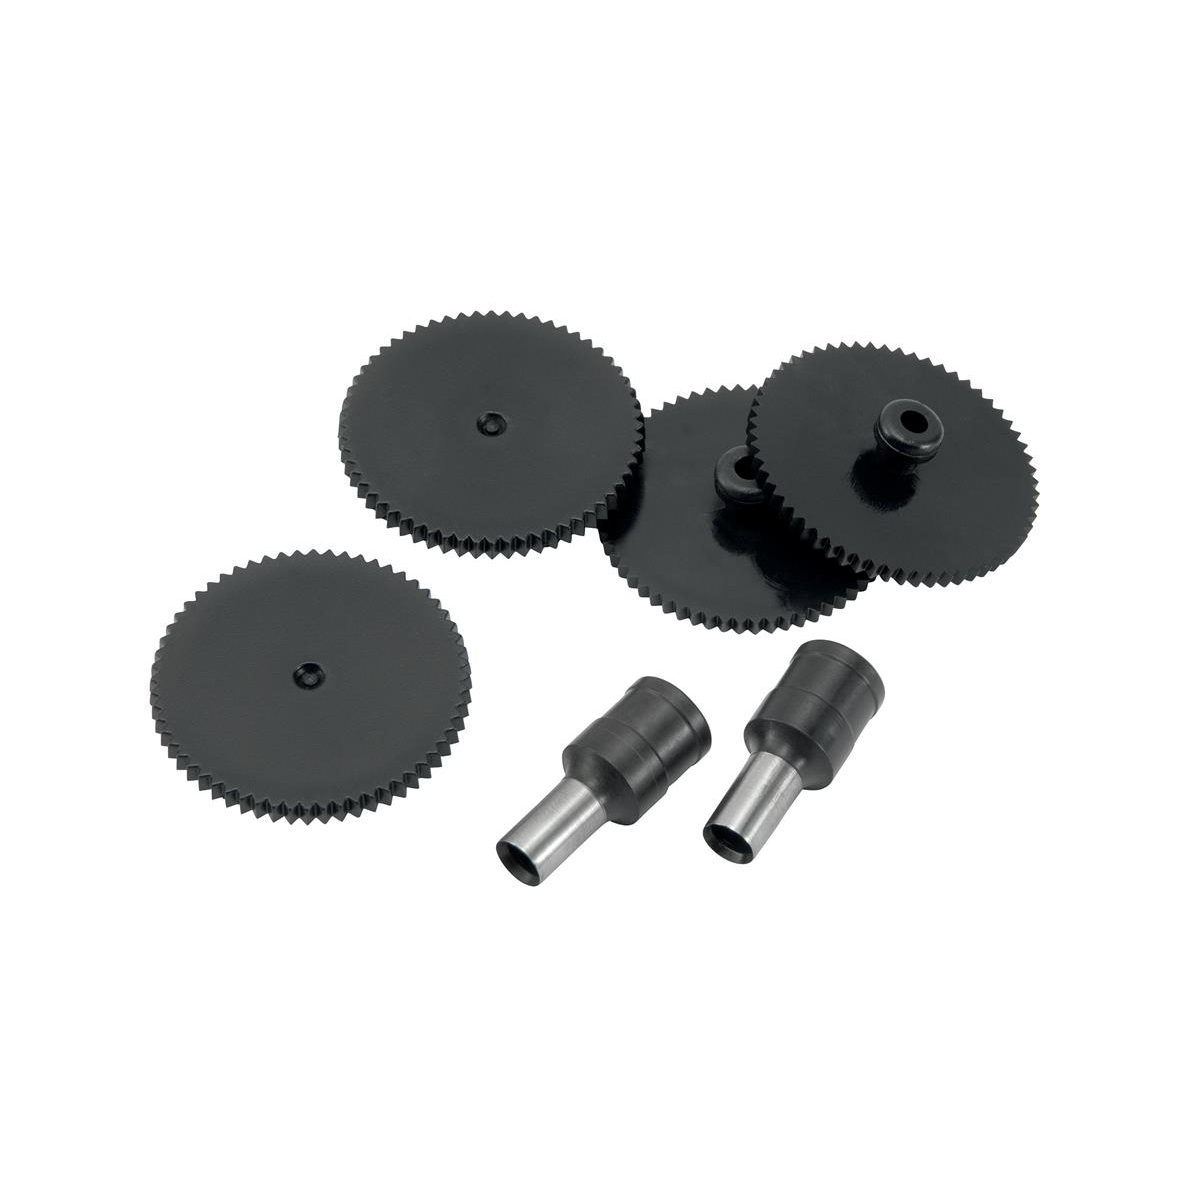 5 Star Office Replacement Cutter and Discs for Heavy-duty Hole Punch